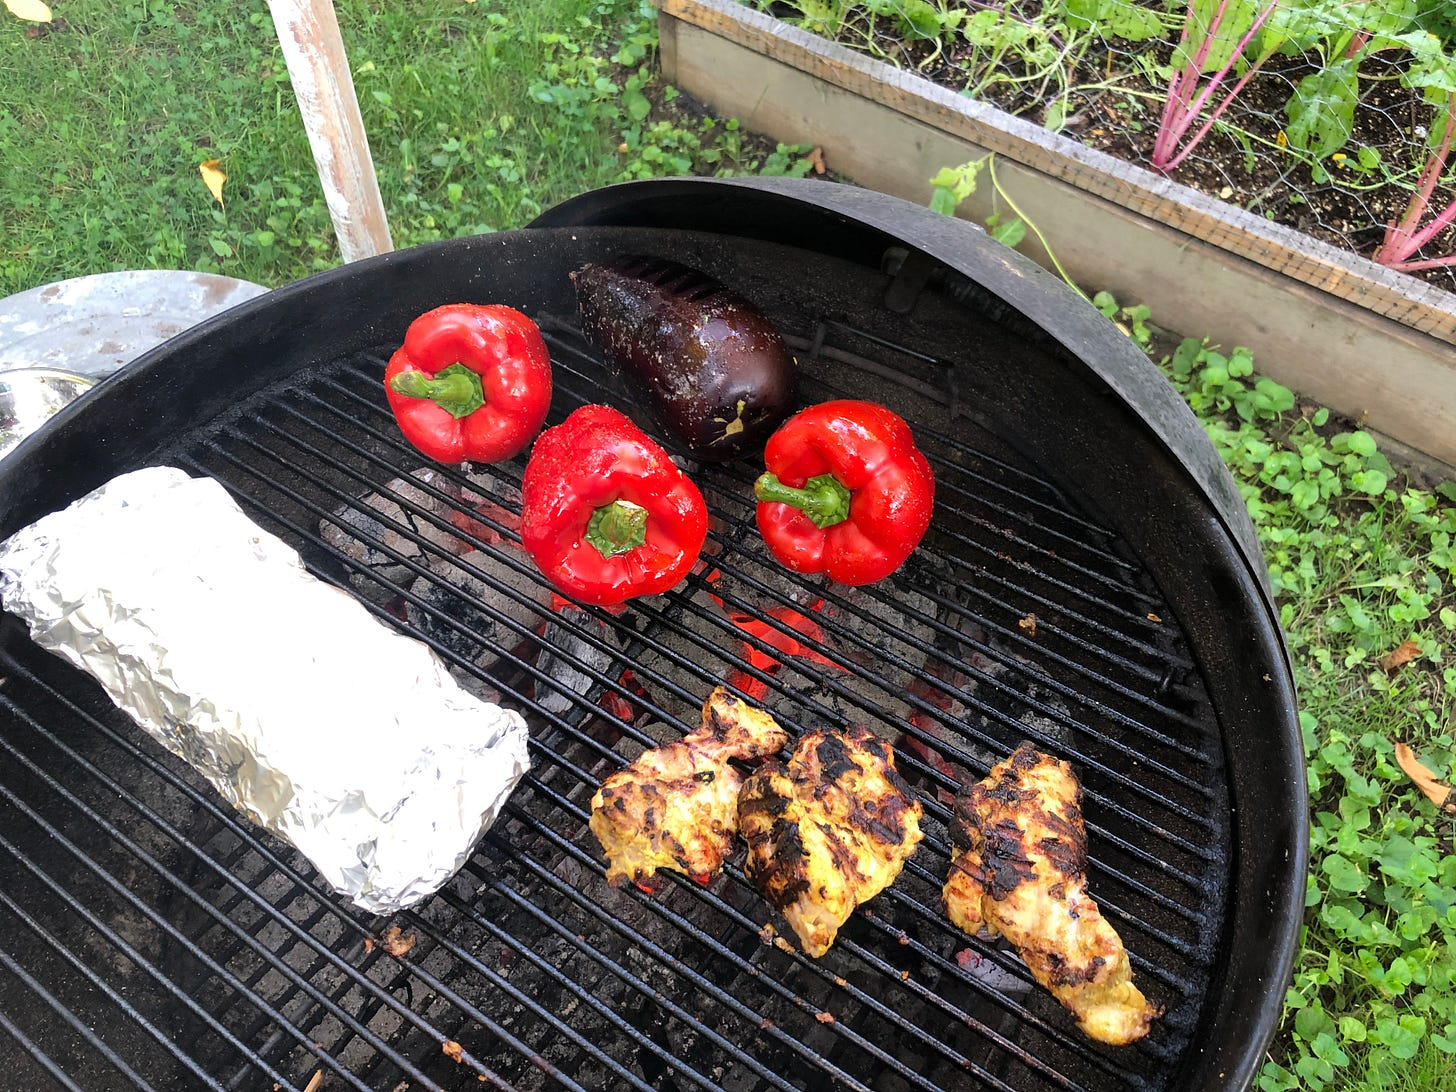 A charcoal grill with XYLO charcoal blocks burning. Three red peppers and an eggplant are directly over the coals. A foil packet of potatoes and some marinated chicken thighs are offset slightly and not directly over the coals.